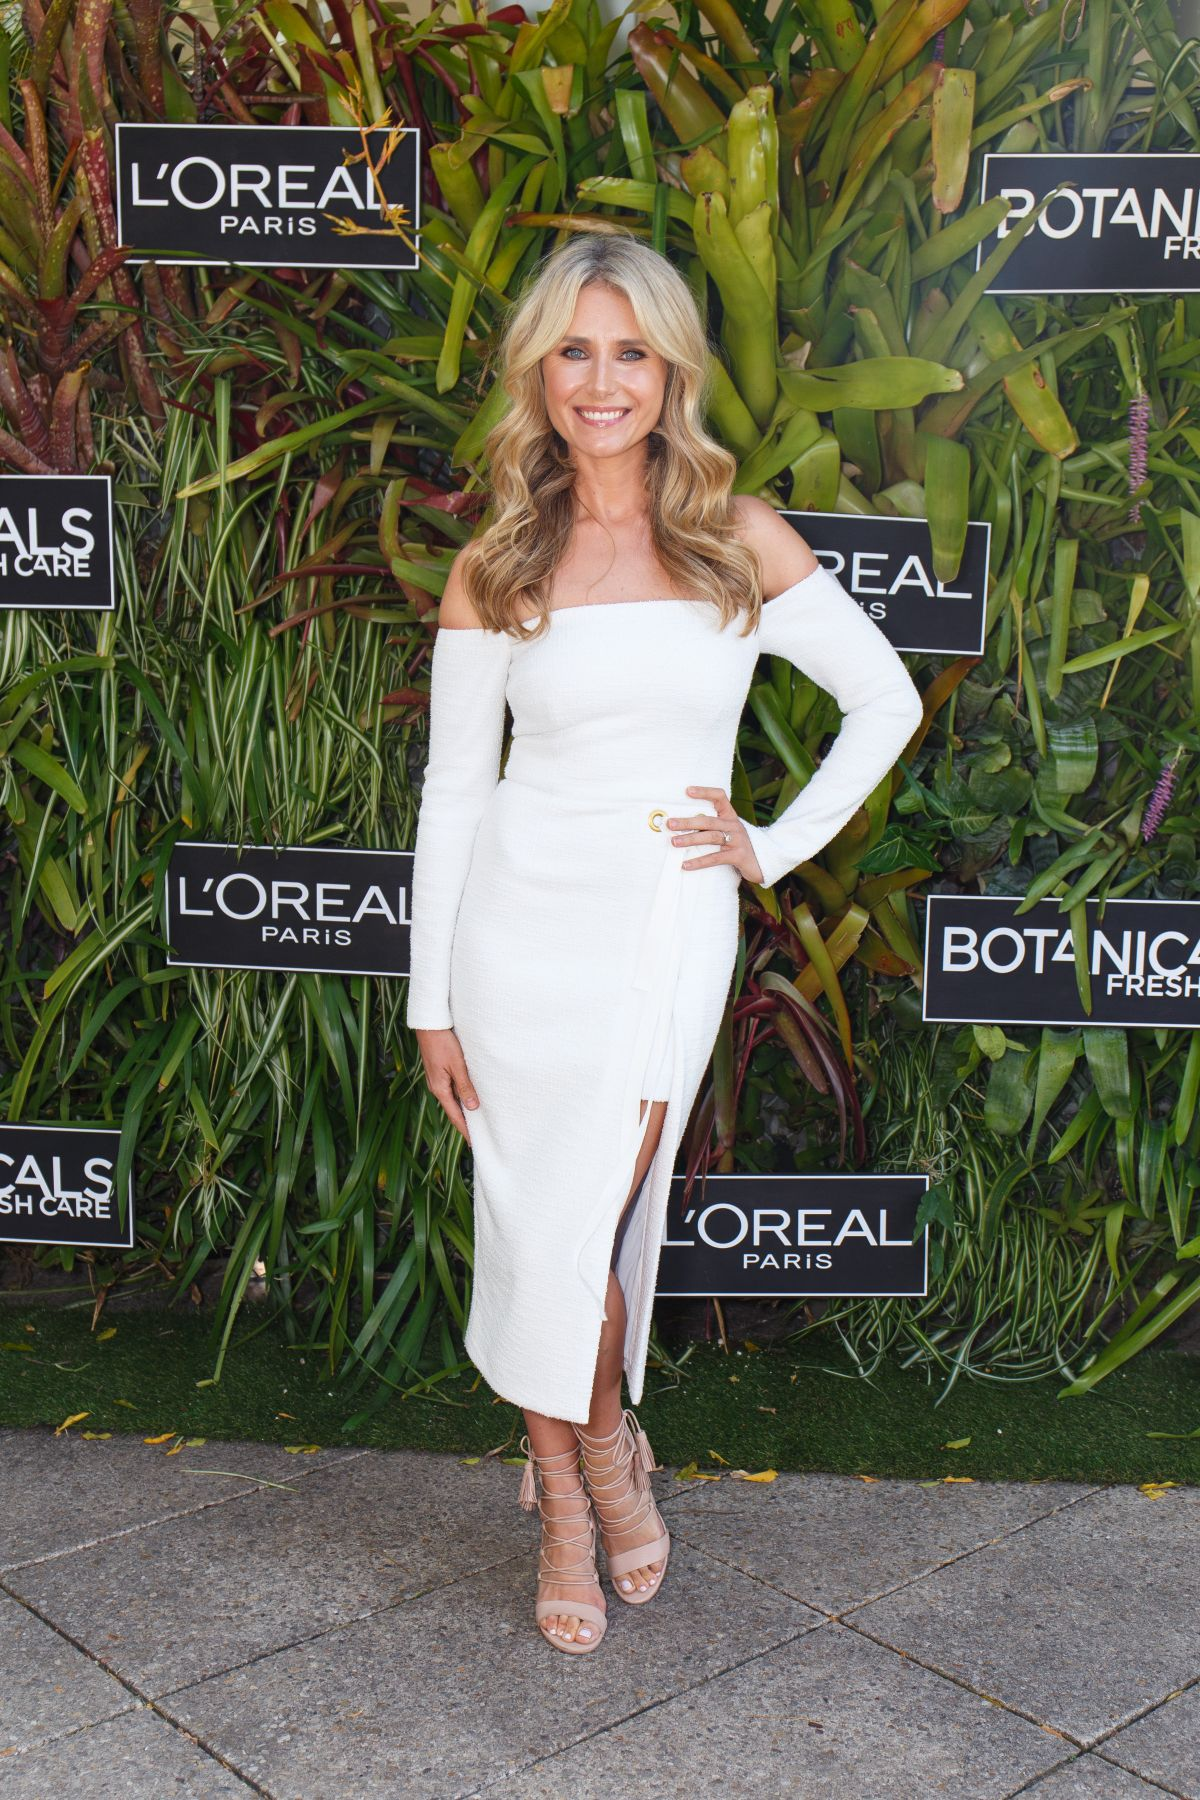 MAGDALENA ROZE at Botanicals Fresh Care Ambassador Launch in Sydney 04/19/2017